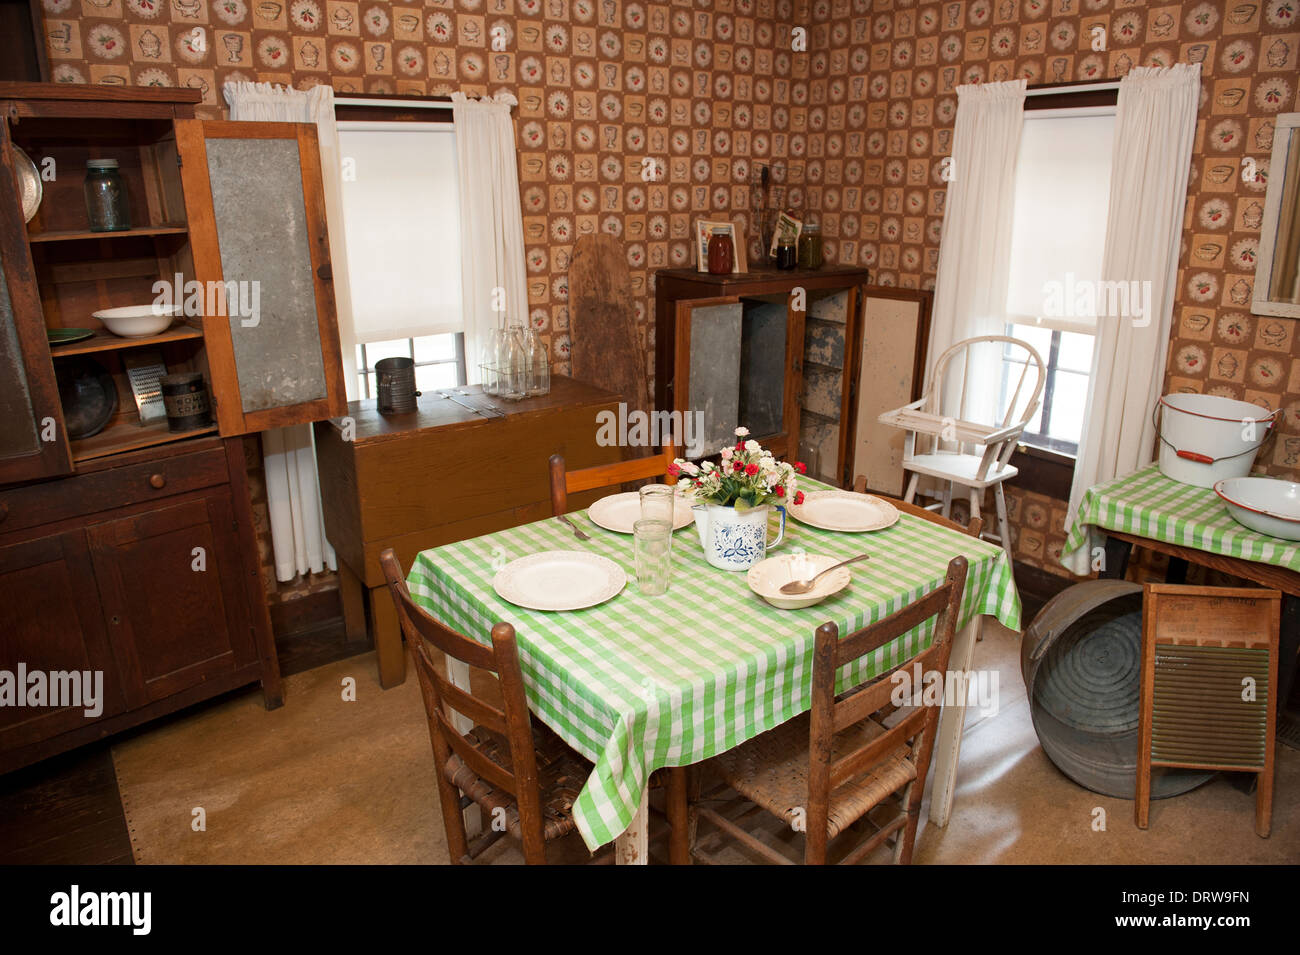 USA Mississippi MS Miss Tupelo Elvis Presley birthplace home birth - interior of the kitchen in his first home - Stock Image